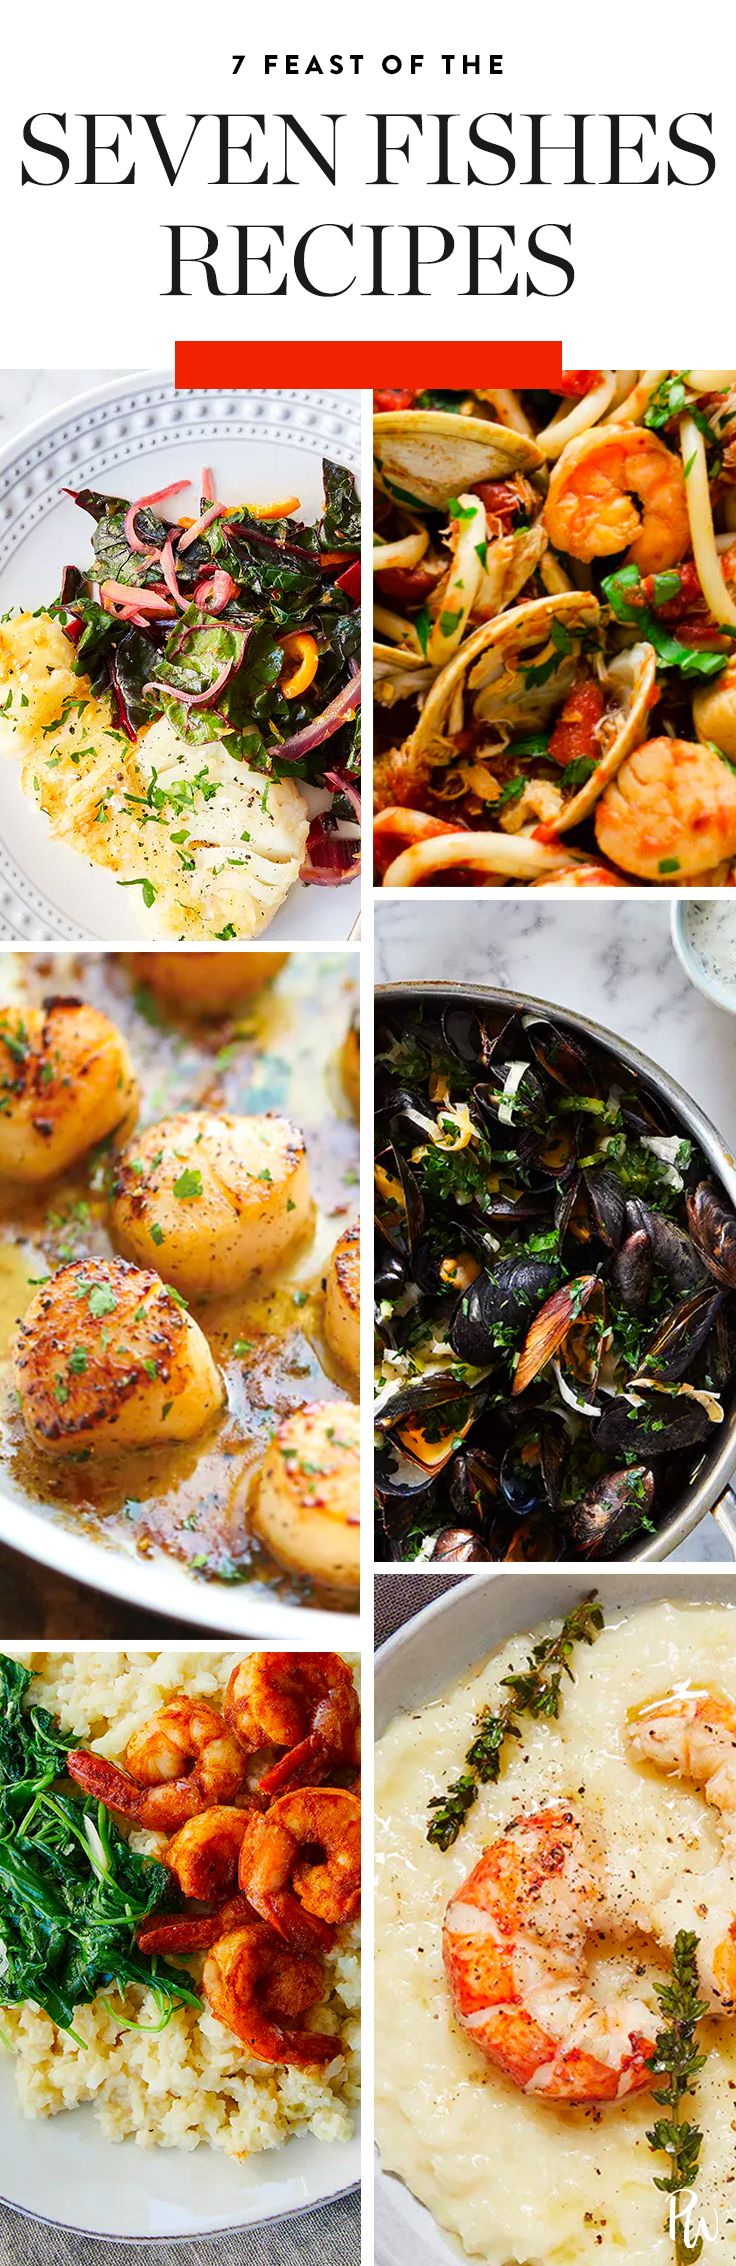 This year, try out a (delicious) Italian tradition: the Feast of the Seven Fishes. Presenting seven of our favorite seafood dishes to make. #sevenfished #holidayrecipes #holidayrentrees #7fishes #christmasrecipes #fishrecipes